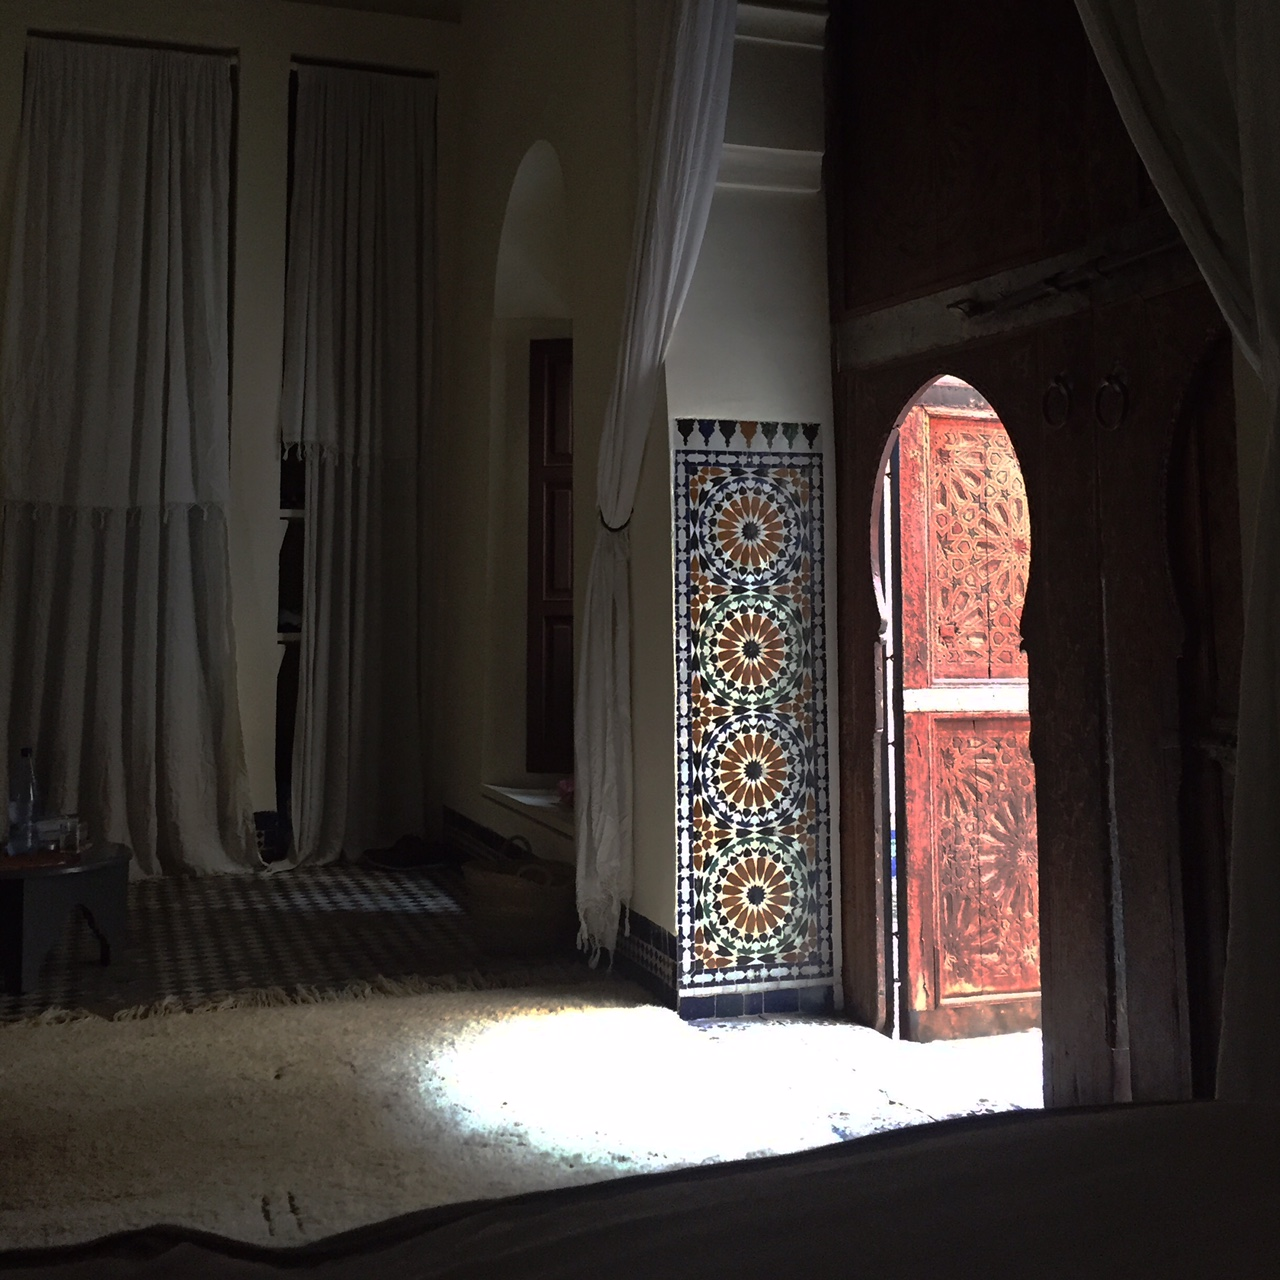 Light from the courtyard spills into our room through the intricately carved door